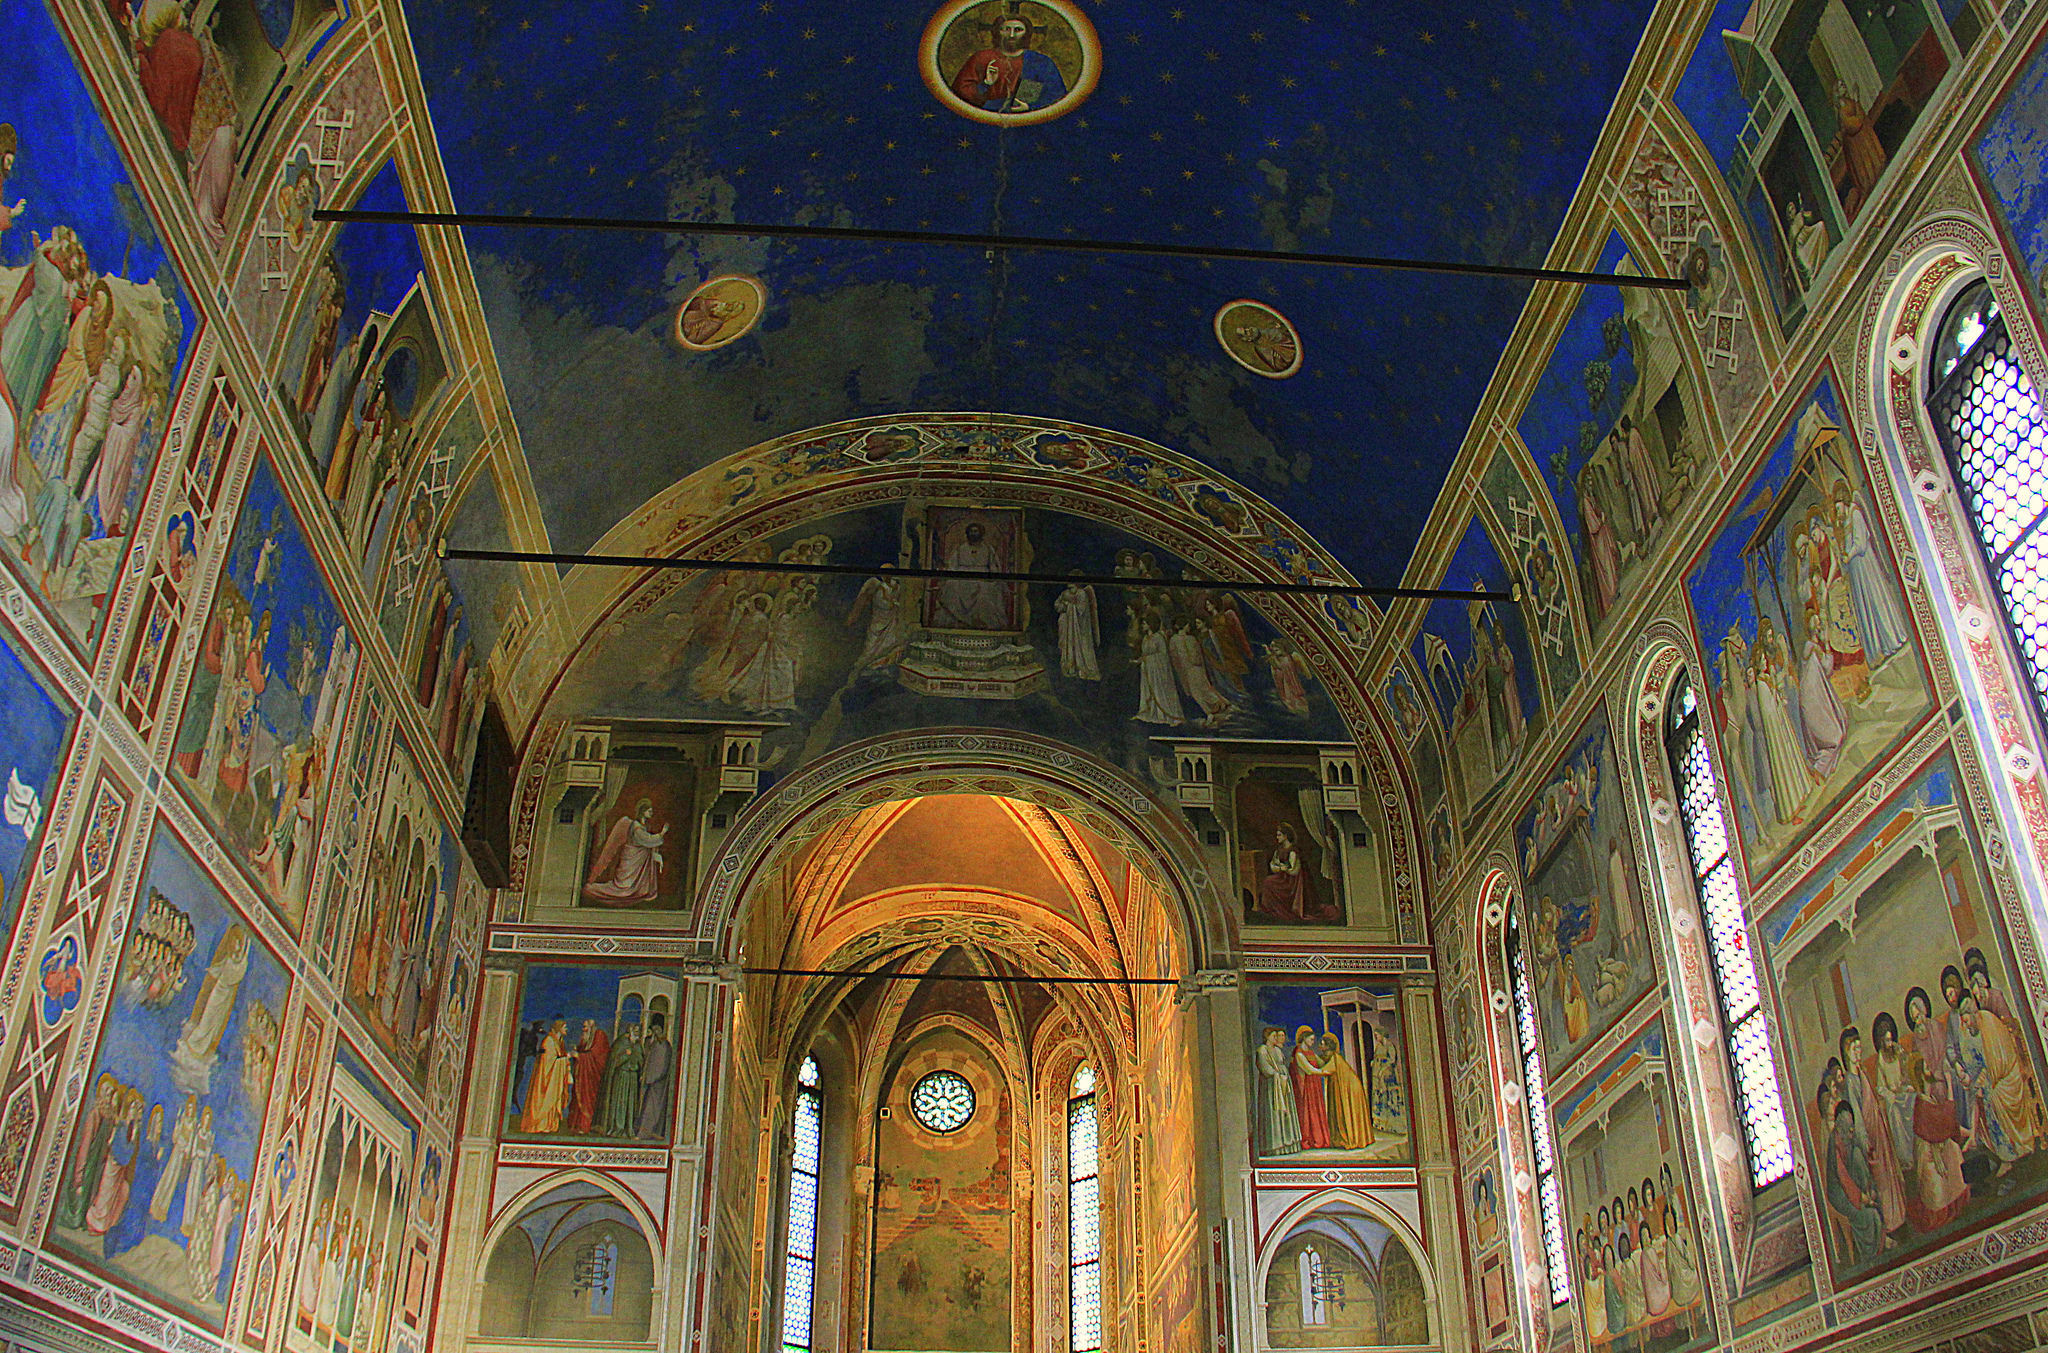 The Scrovegni Chapel in Padua has beautiful frescoes